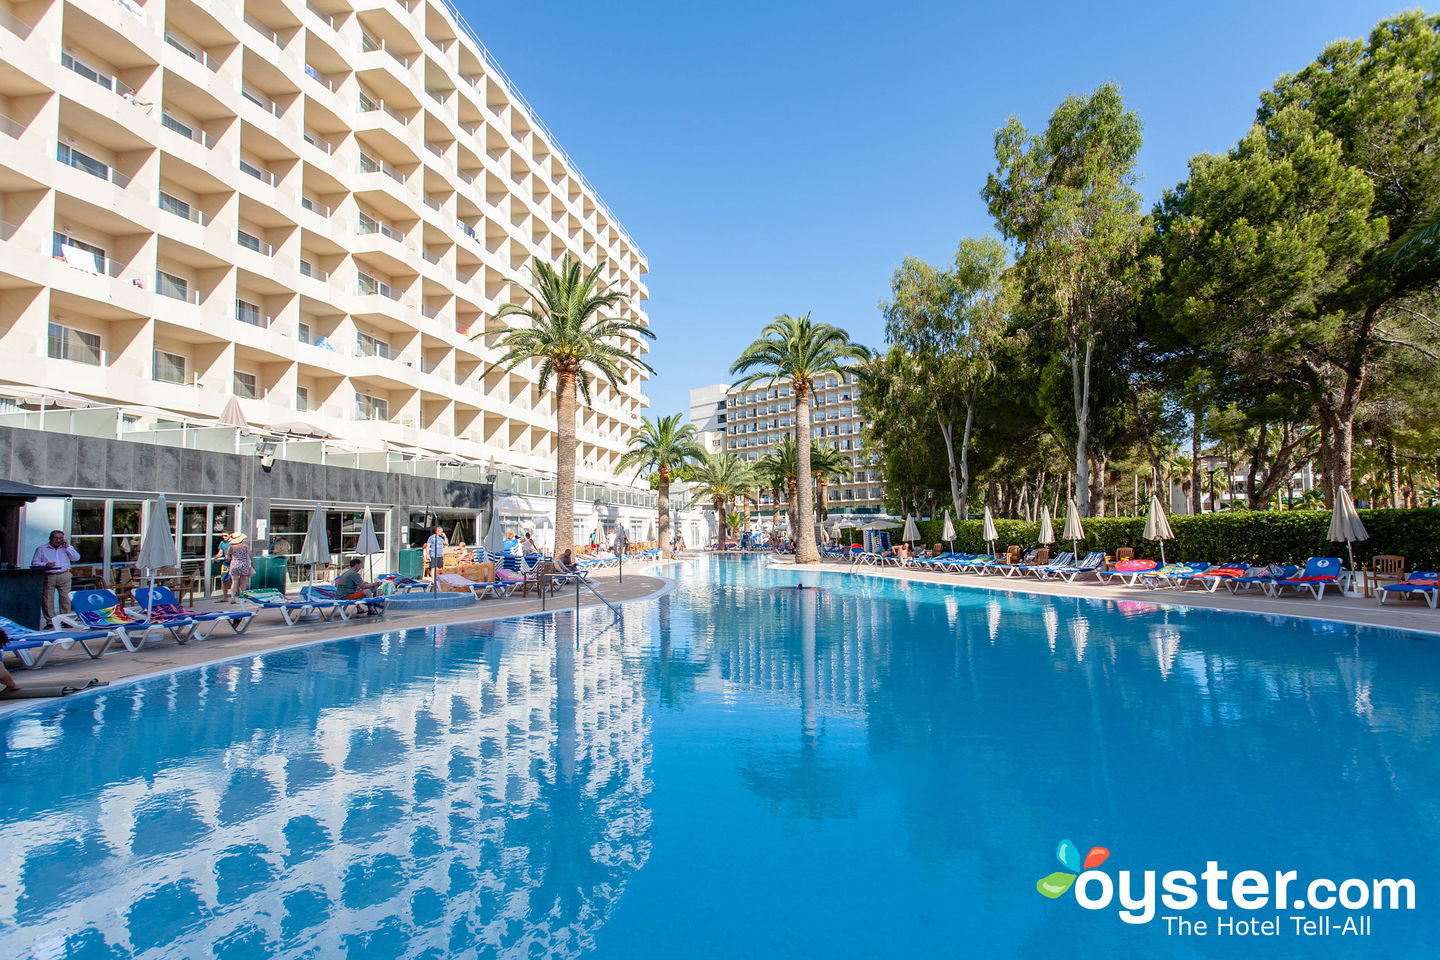 oyster hotel reviews